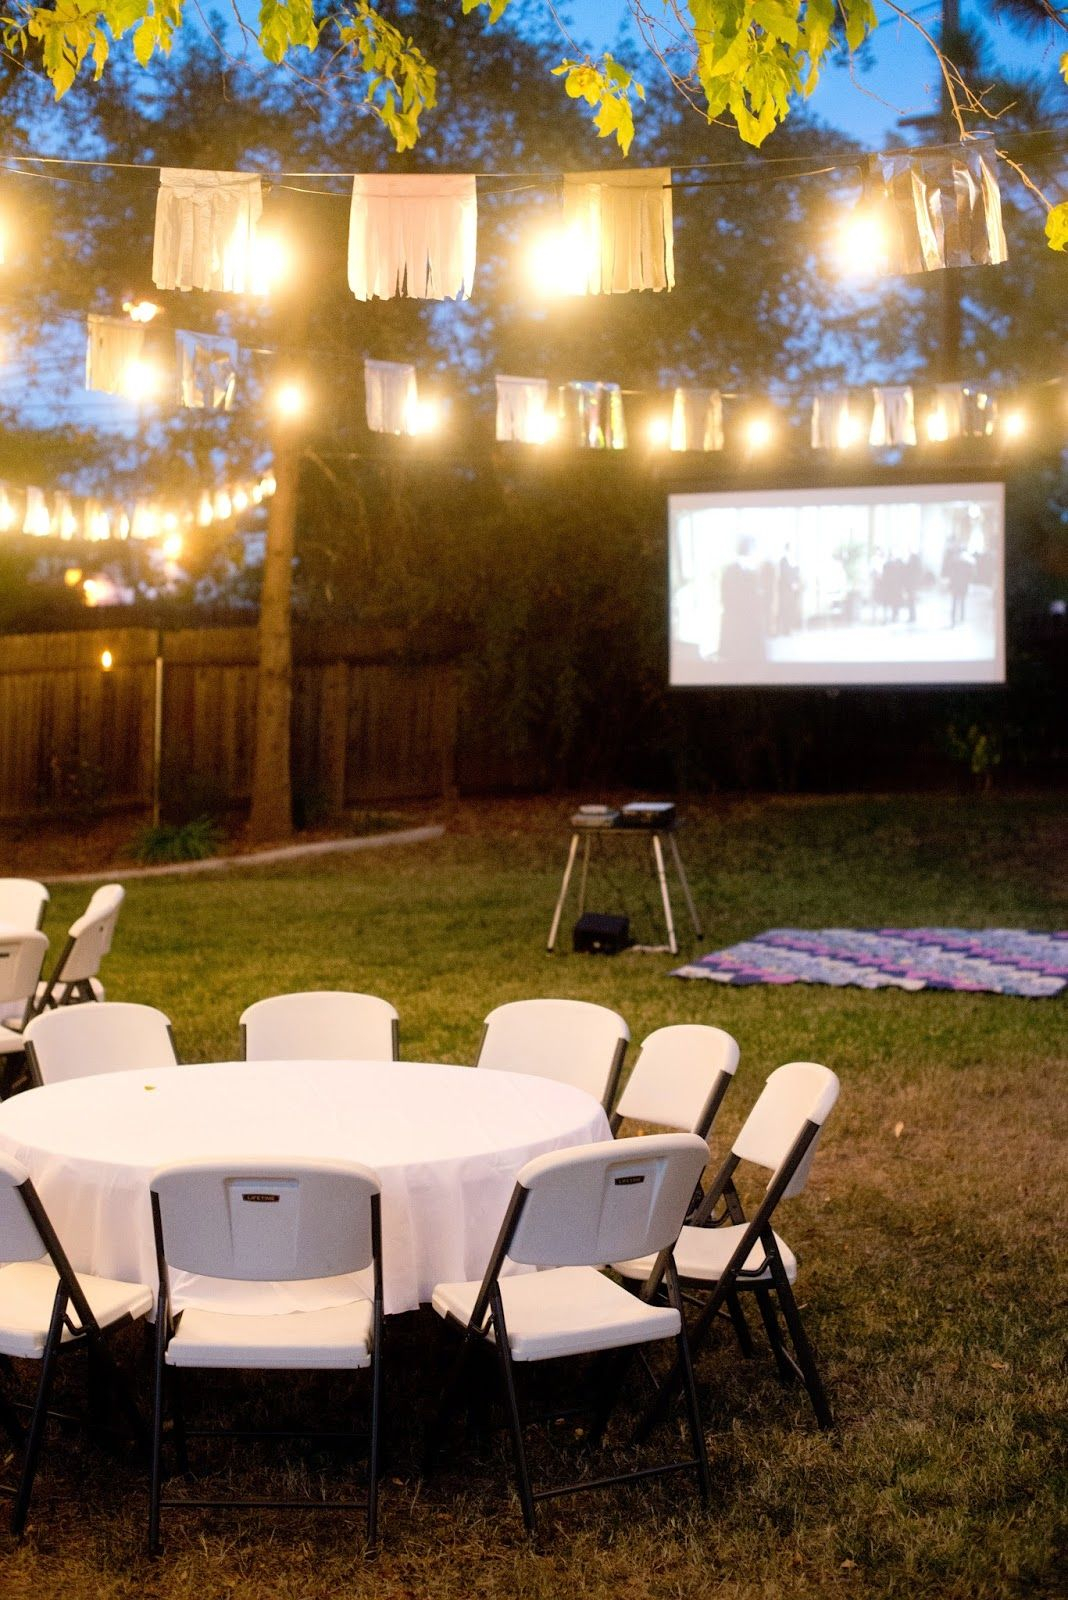 Fall Backyard Birthday Party And Movie Night Diy Home Decor Ideas in 15 Smart Concepts of How to Make Backyard Birthday Party Ideas For Adults